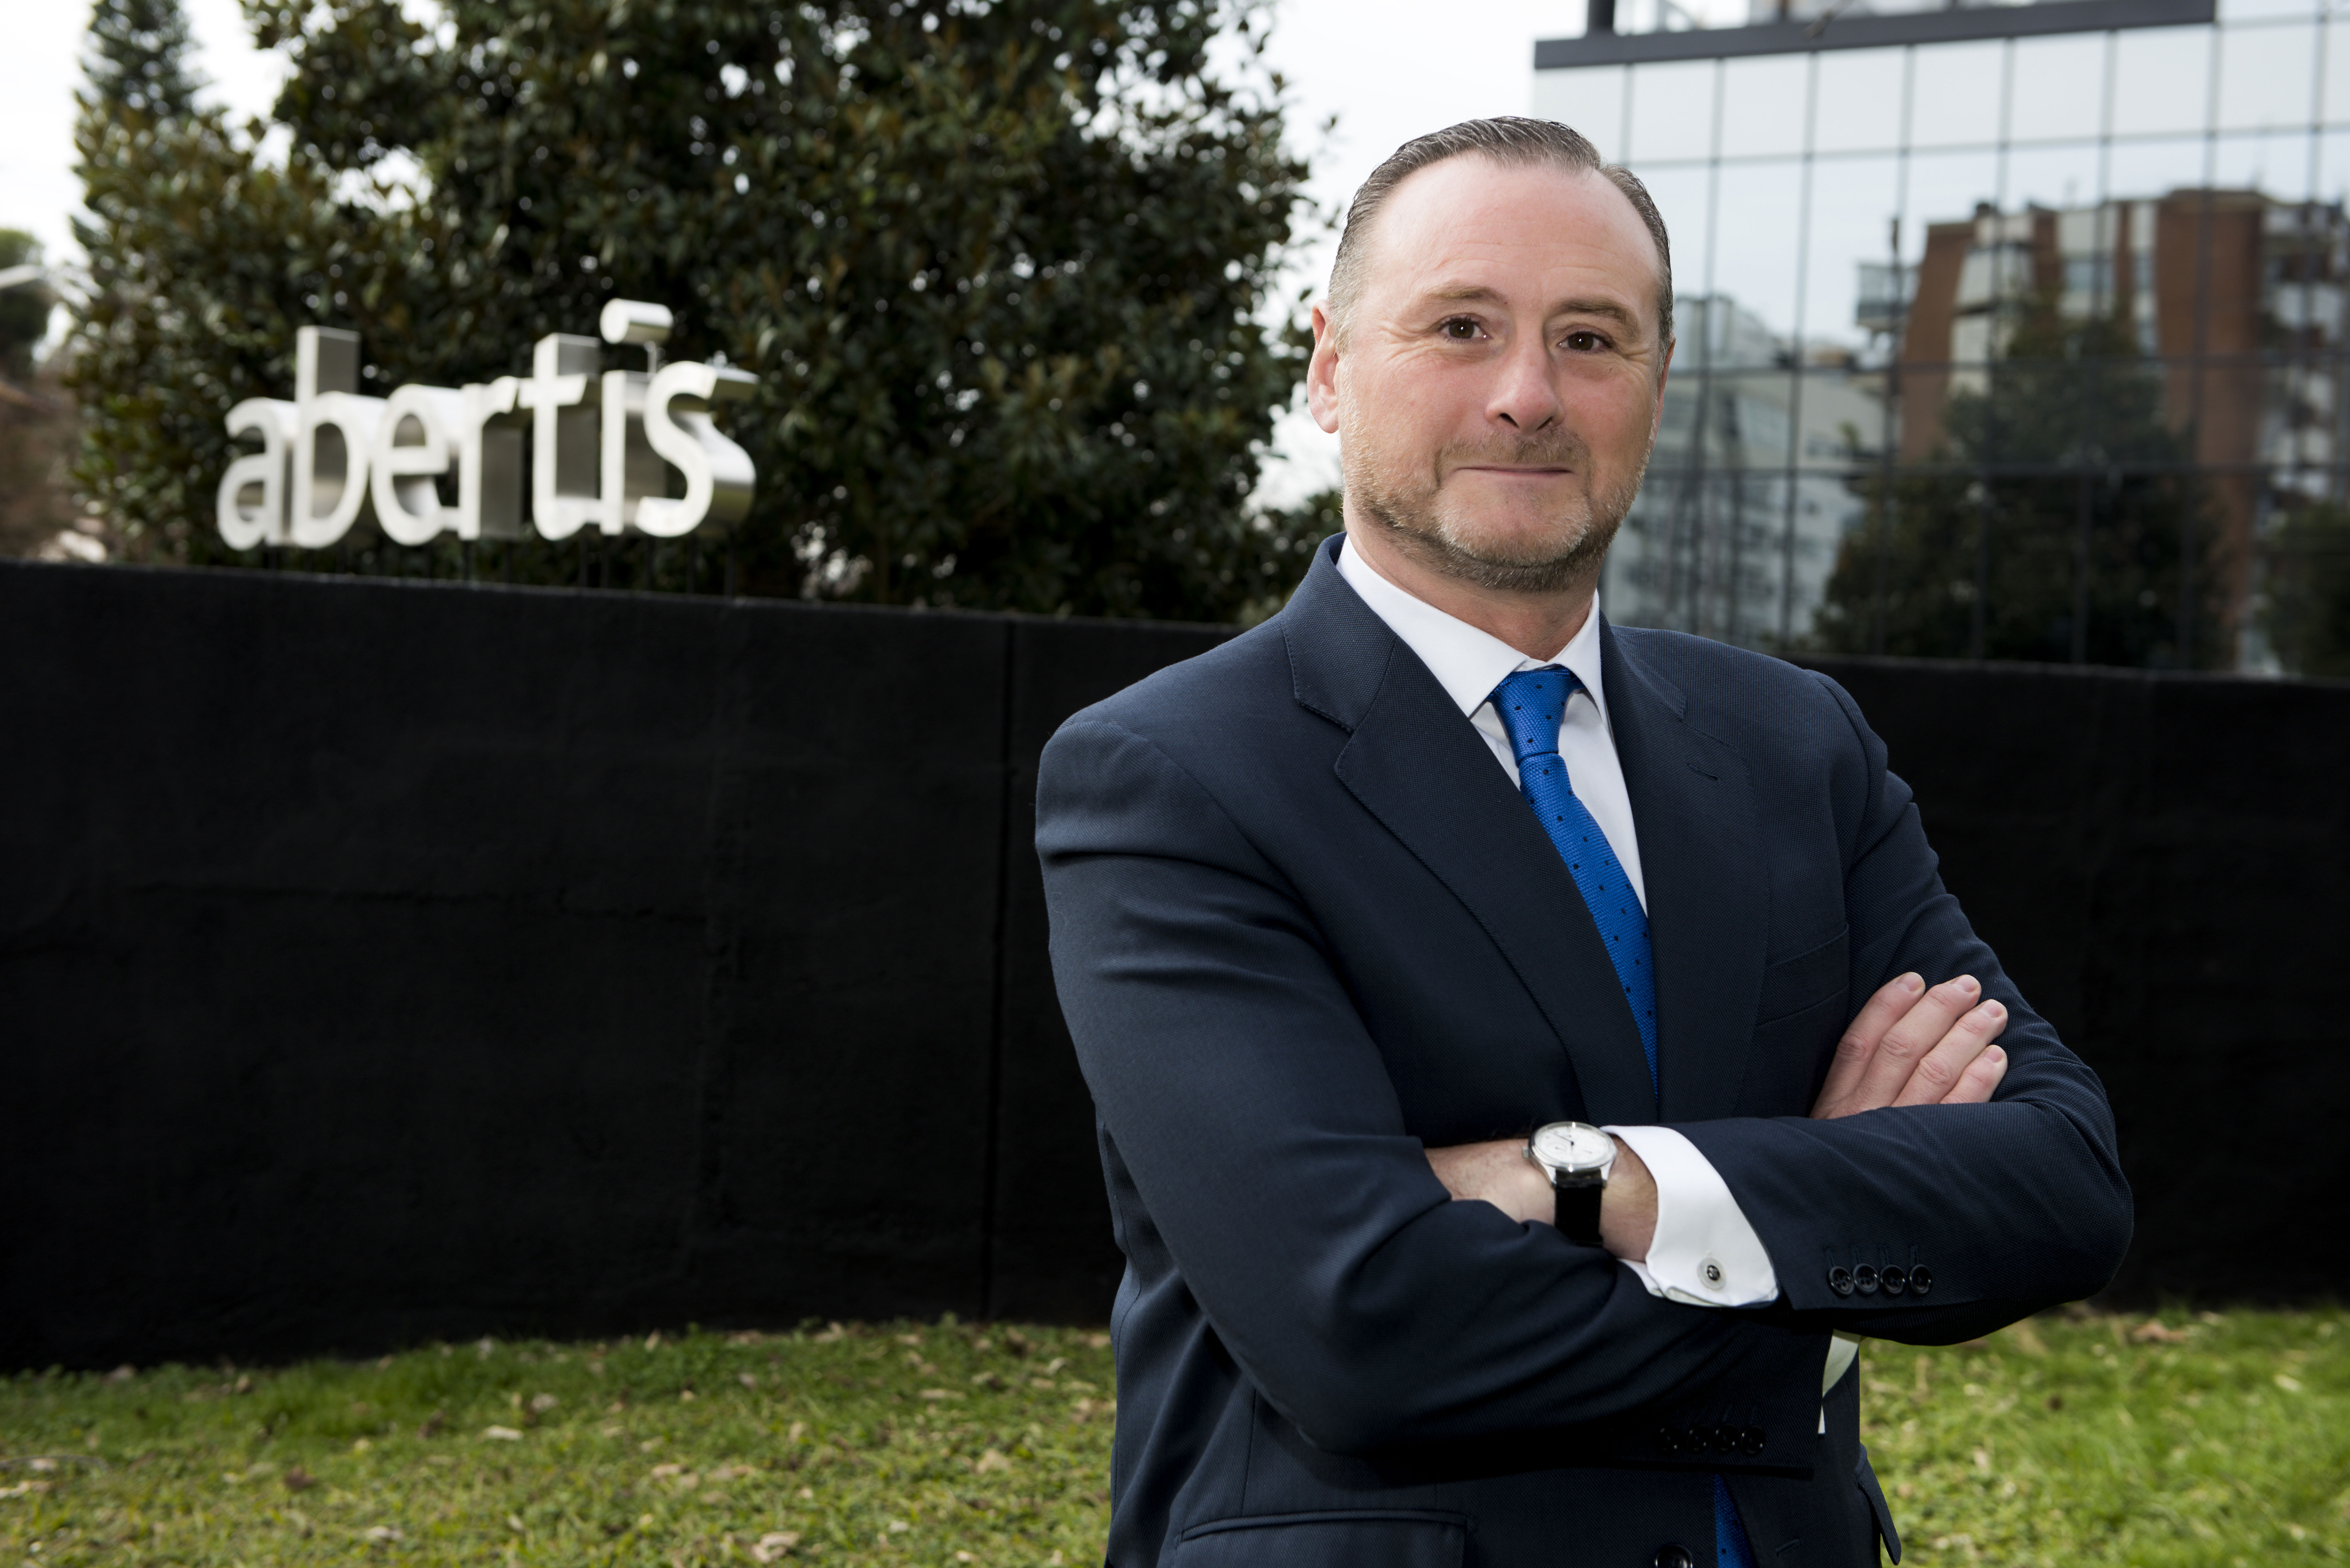 The Abertis' Board of Directors approves the appointment of José Aljaro as new Chief Executive Officer, replacing Francisco Reynés